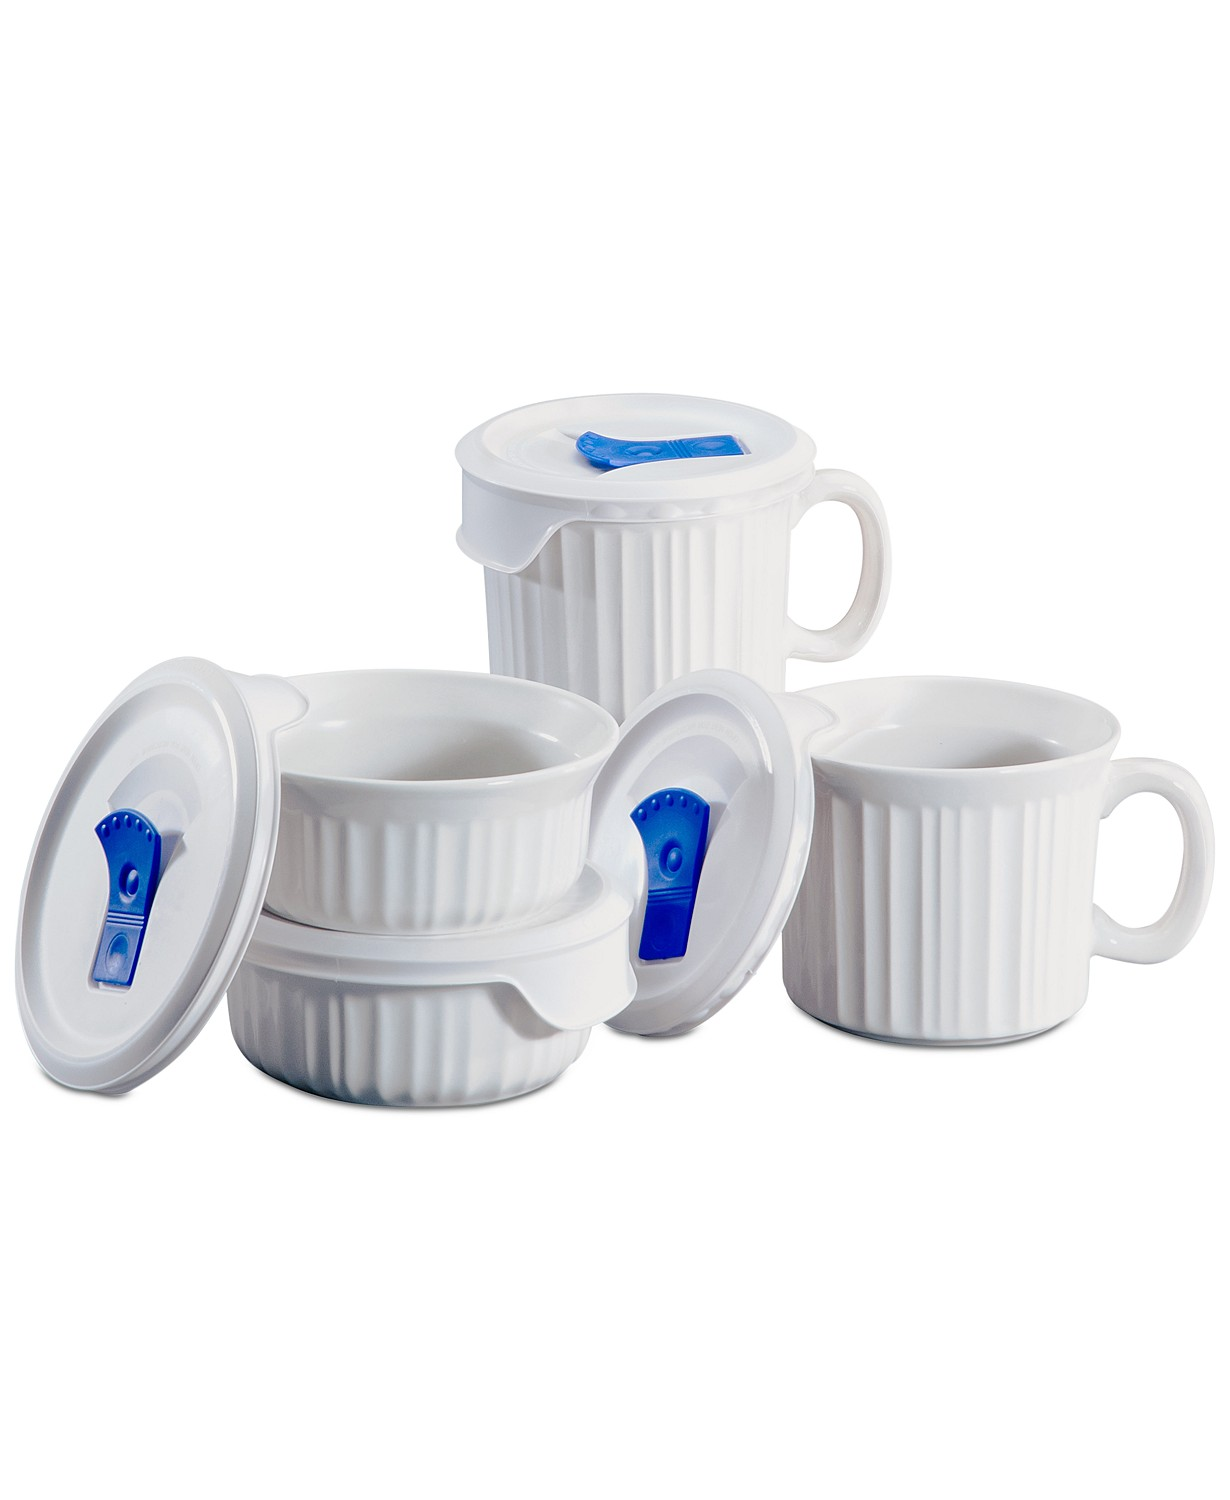 8-Piece CorningWare French White Pop-Ins Mug Set